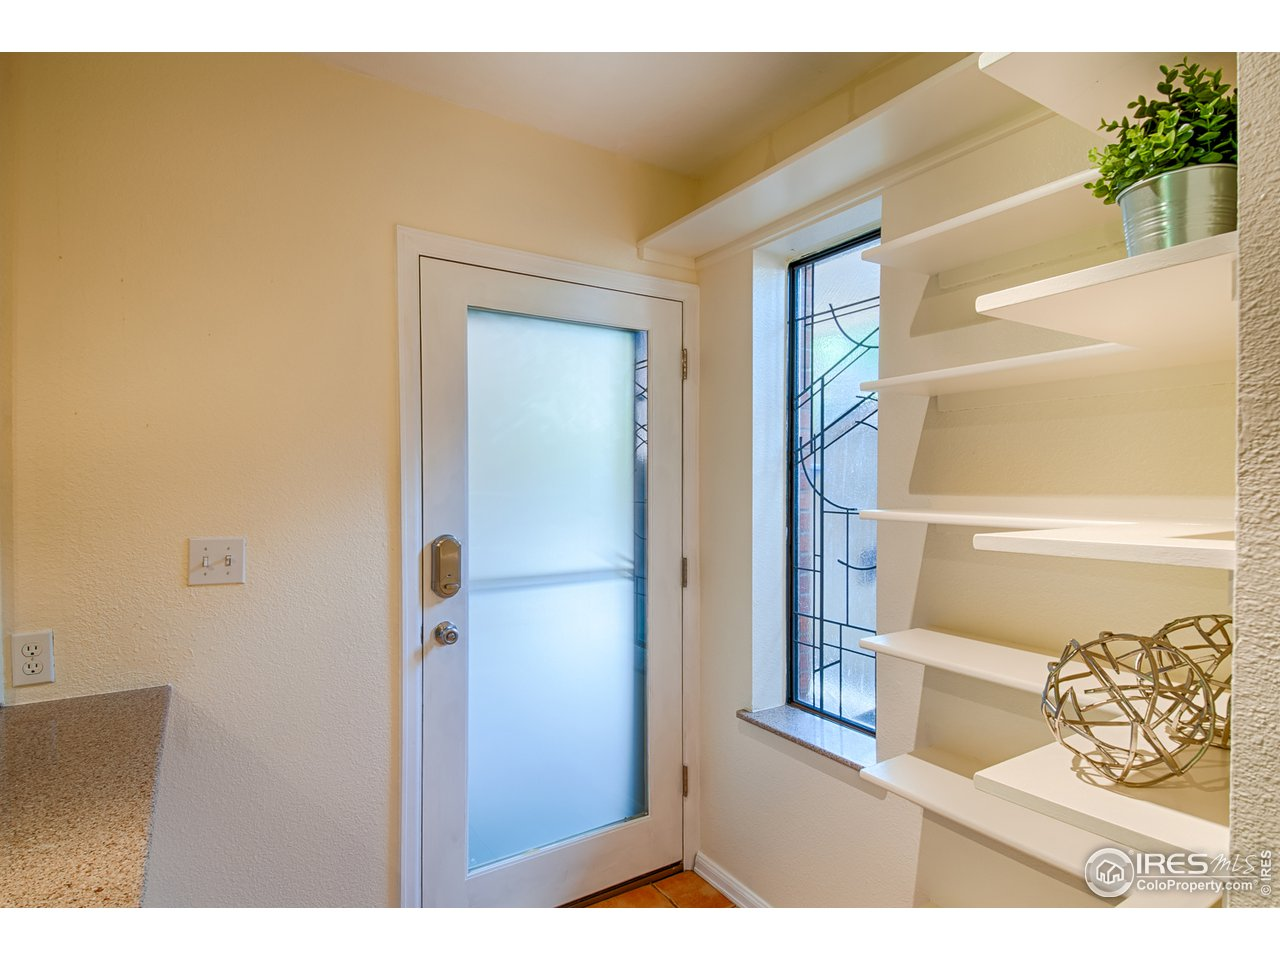 Front Door Entry w/ Built-in Shelves